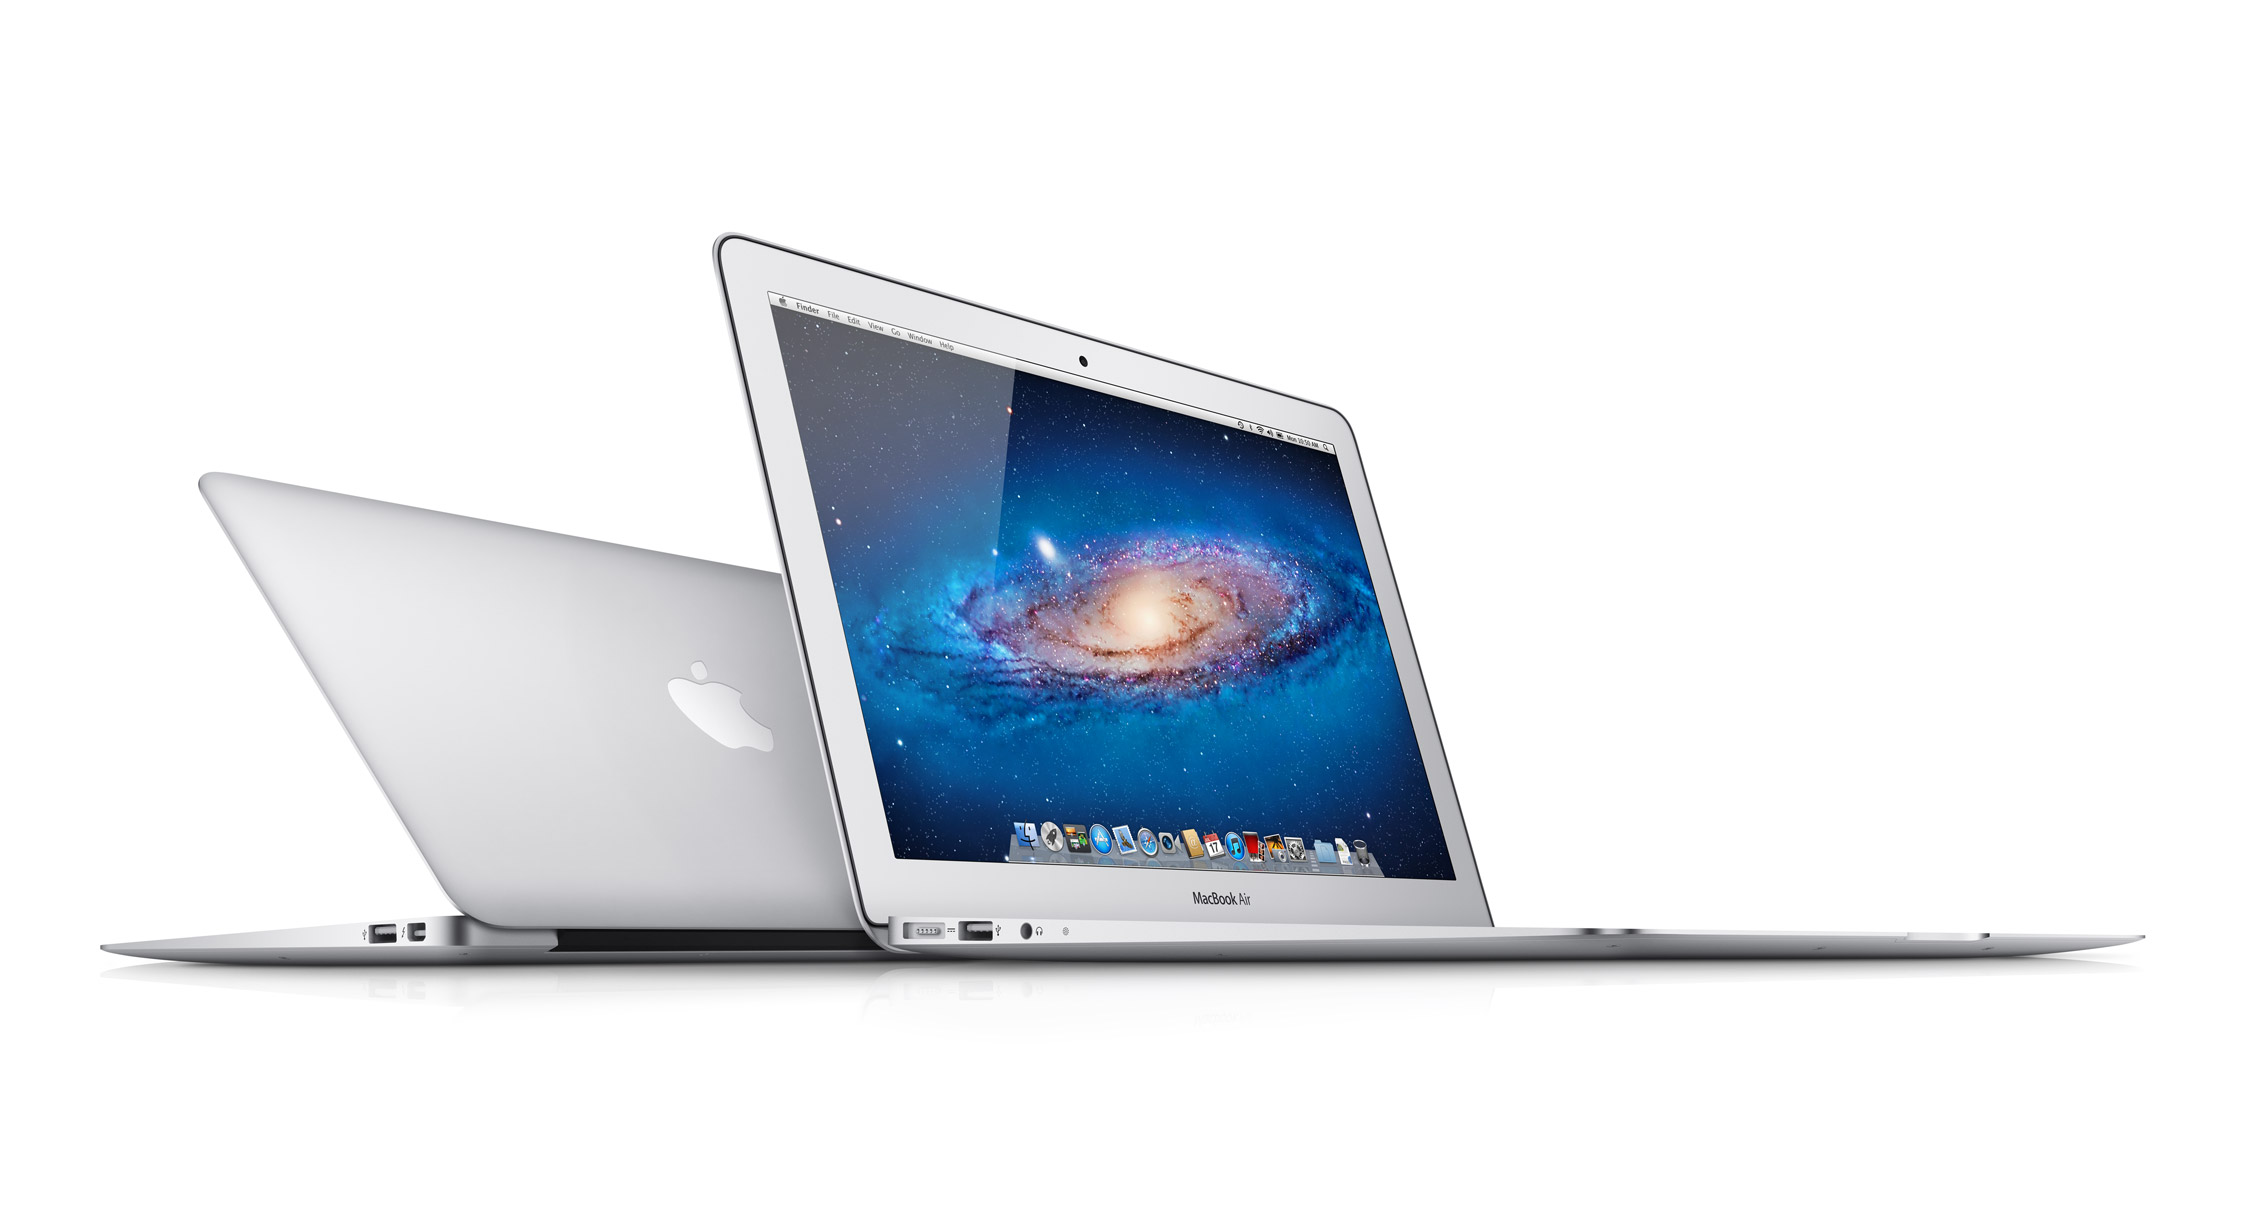 macbook air 11 inch and 13 inch updated with intel core i5 i7 ivy bridge processors bitdynasty. Black Bedroom Furniture Sets. Home Design Ideas